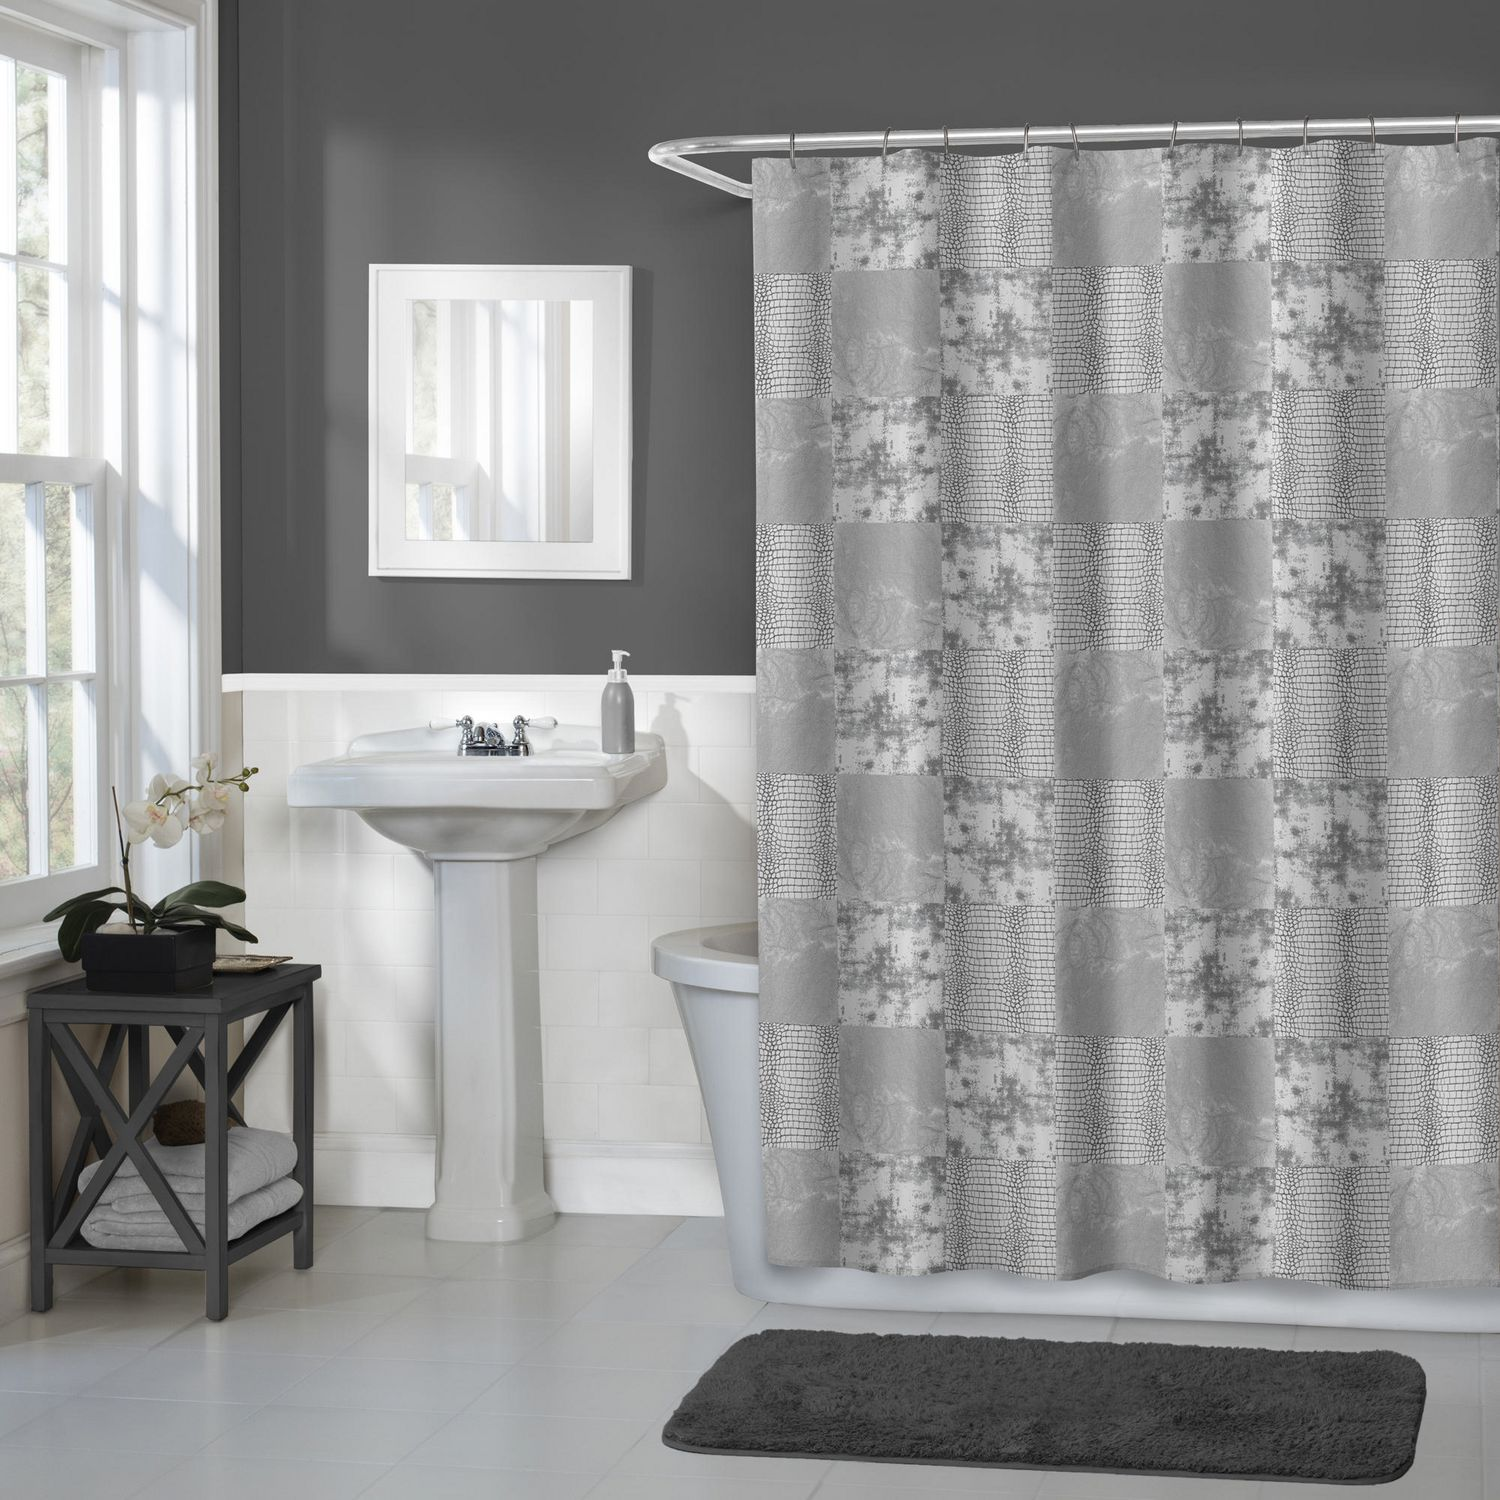 Hometrends Home Trends Wildy Fabric Shower Curtain 70 Inches X 72 Grey